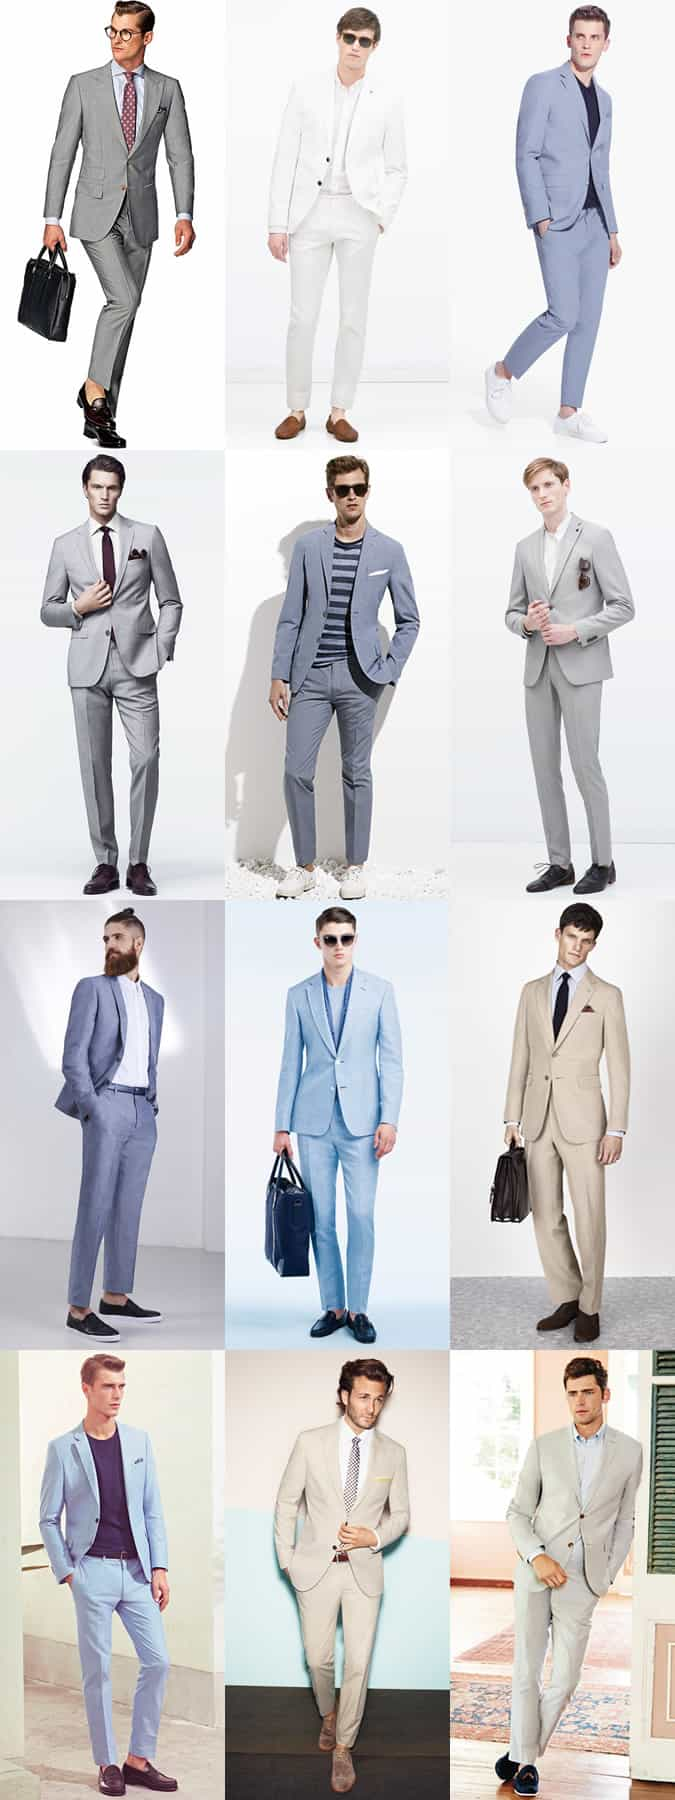 Men's Light Coloured Suits In Pale Grey, Sky Blue and Beige - Summer Outfit Inspiration Lookbook